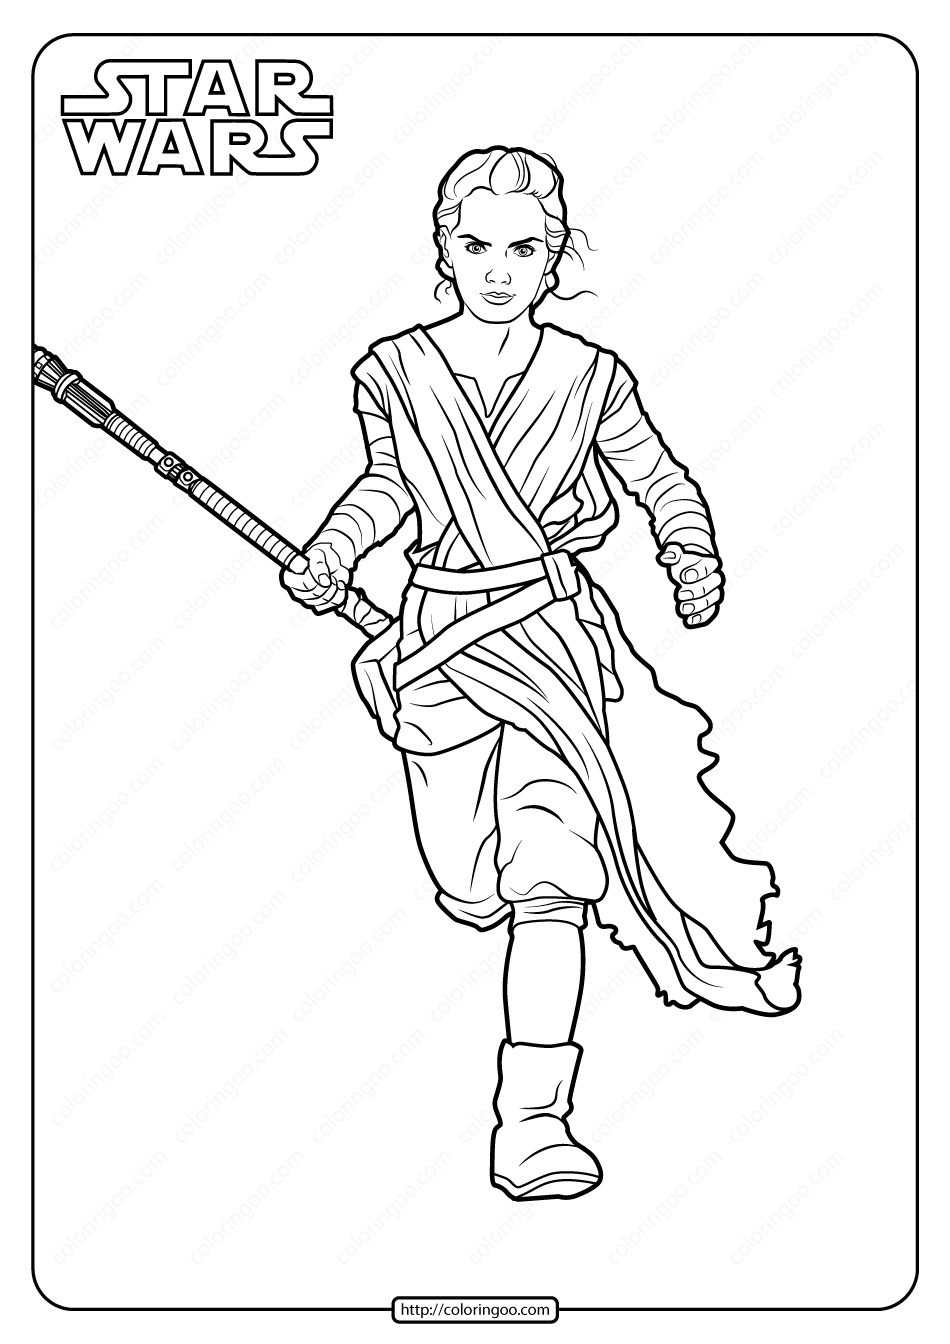 Star Wars Rey Printable Coloring Pages Book Rey Star Wars Printable Coloring Pages Star Wars Colors